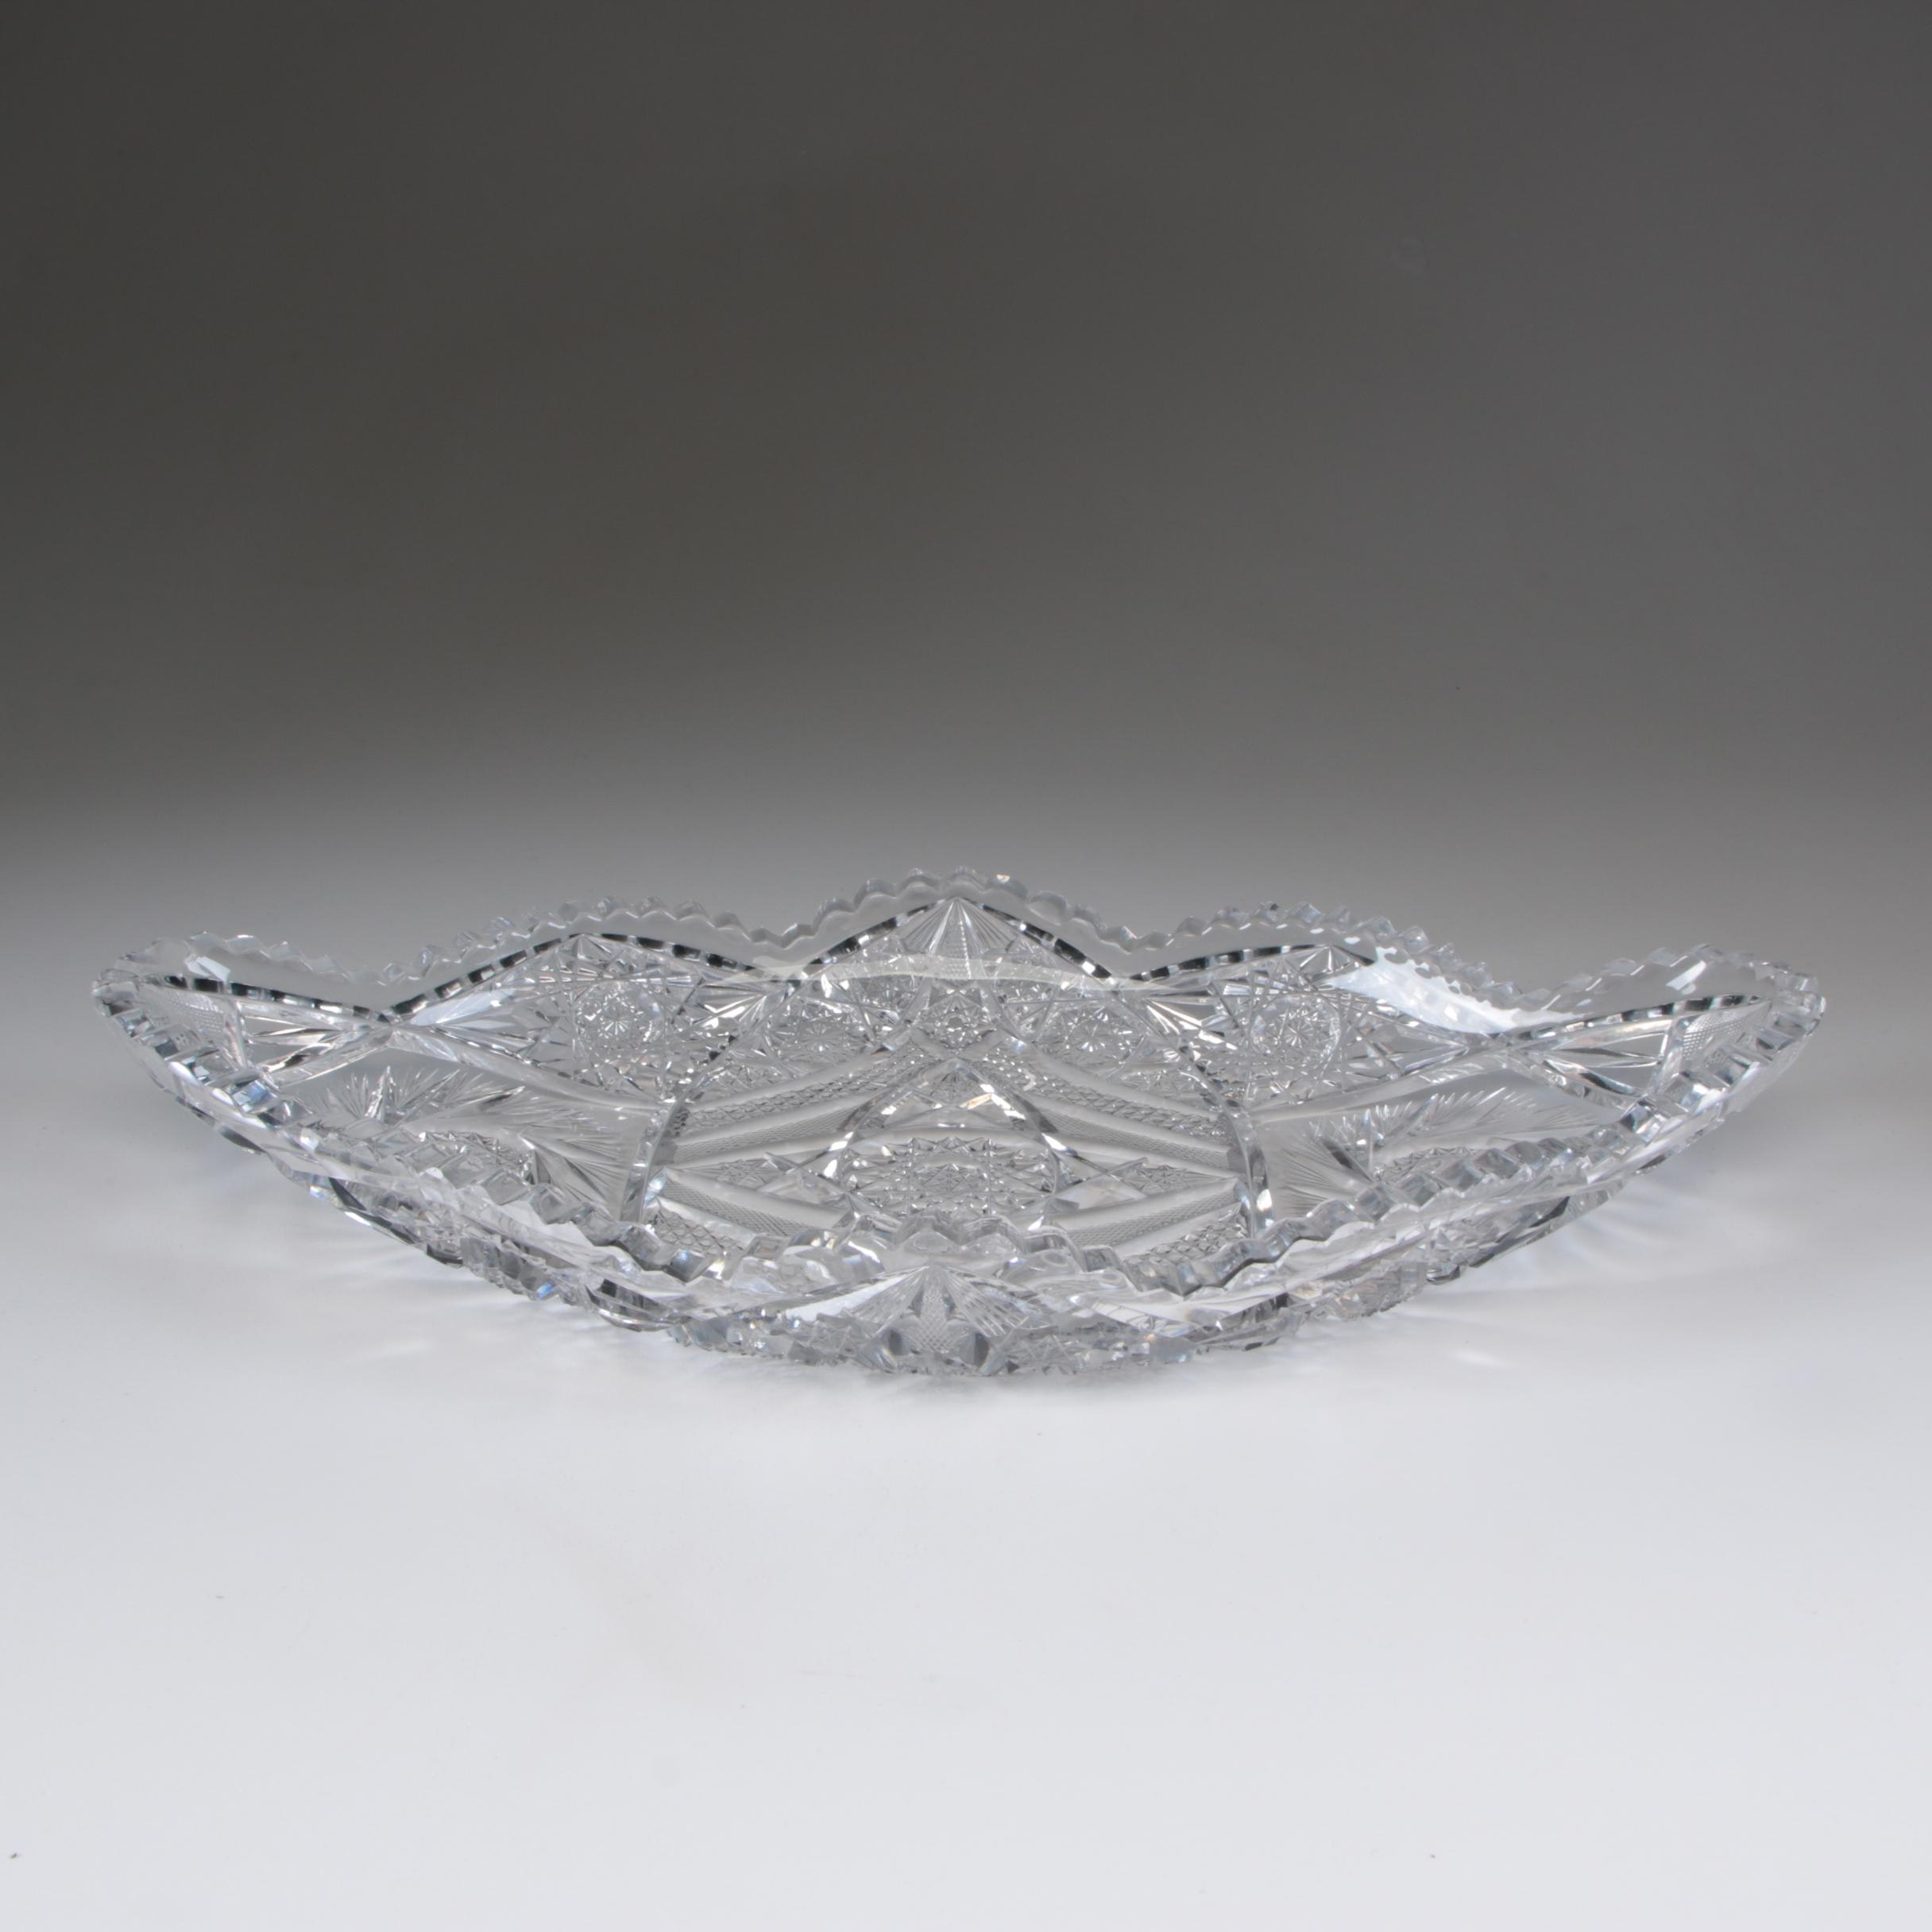 American Brilliant Cut Glass Oval Serving Bowl, Late 19th/Early 20th Century